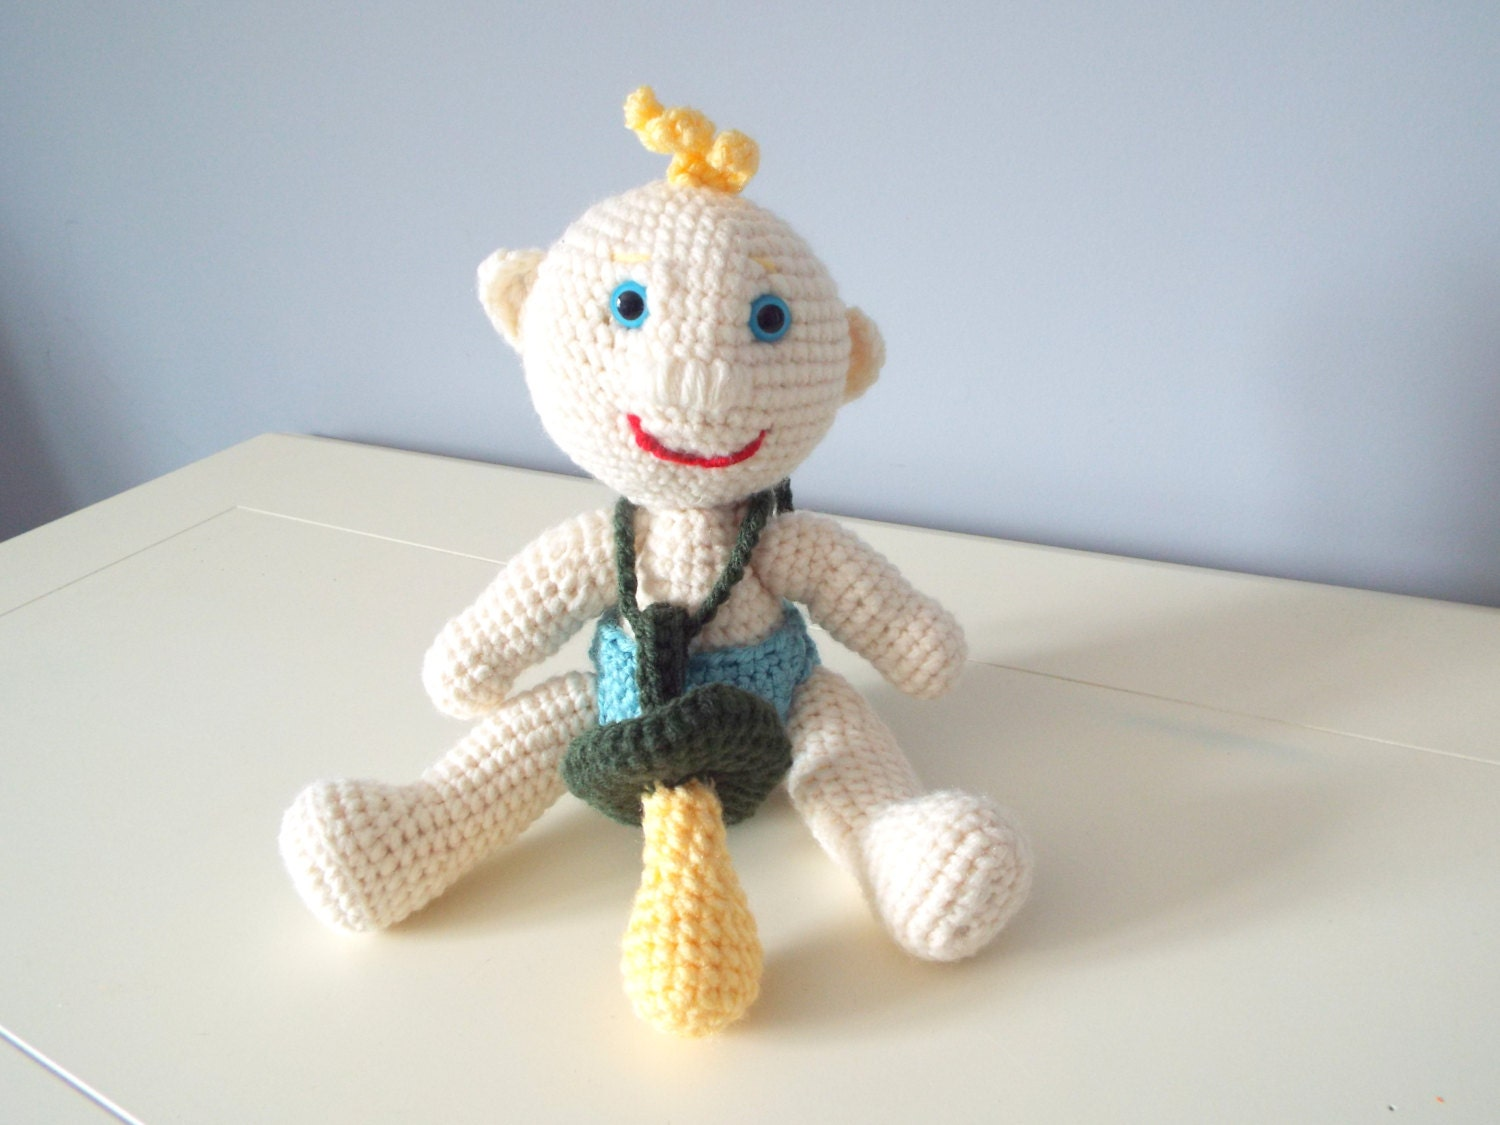 Crochet baby doll stuffed toys amigurumi pacifier home ...